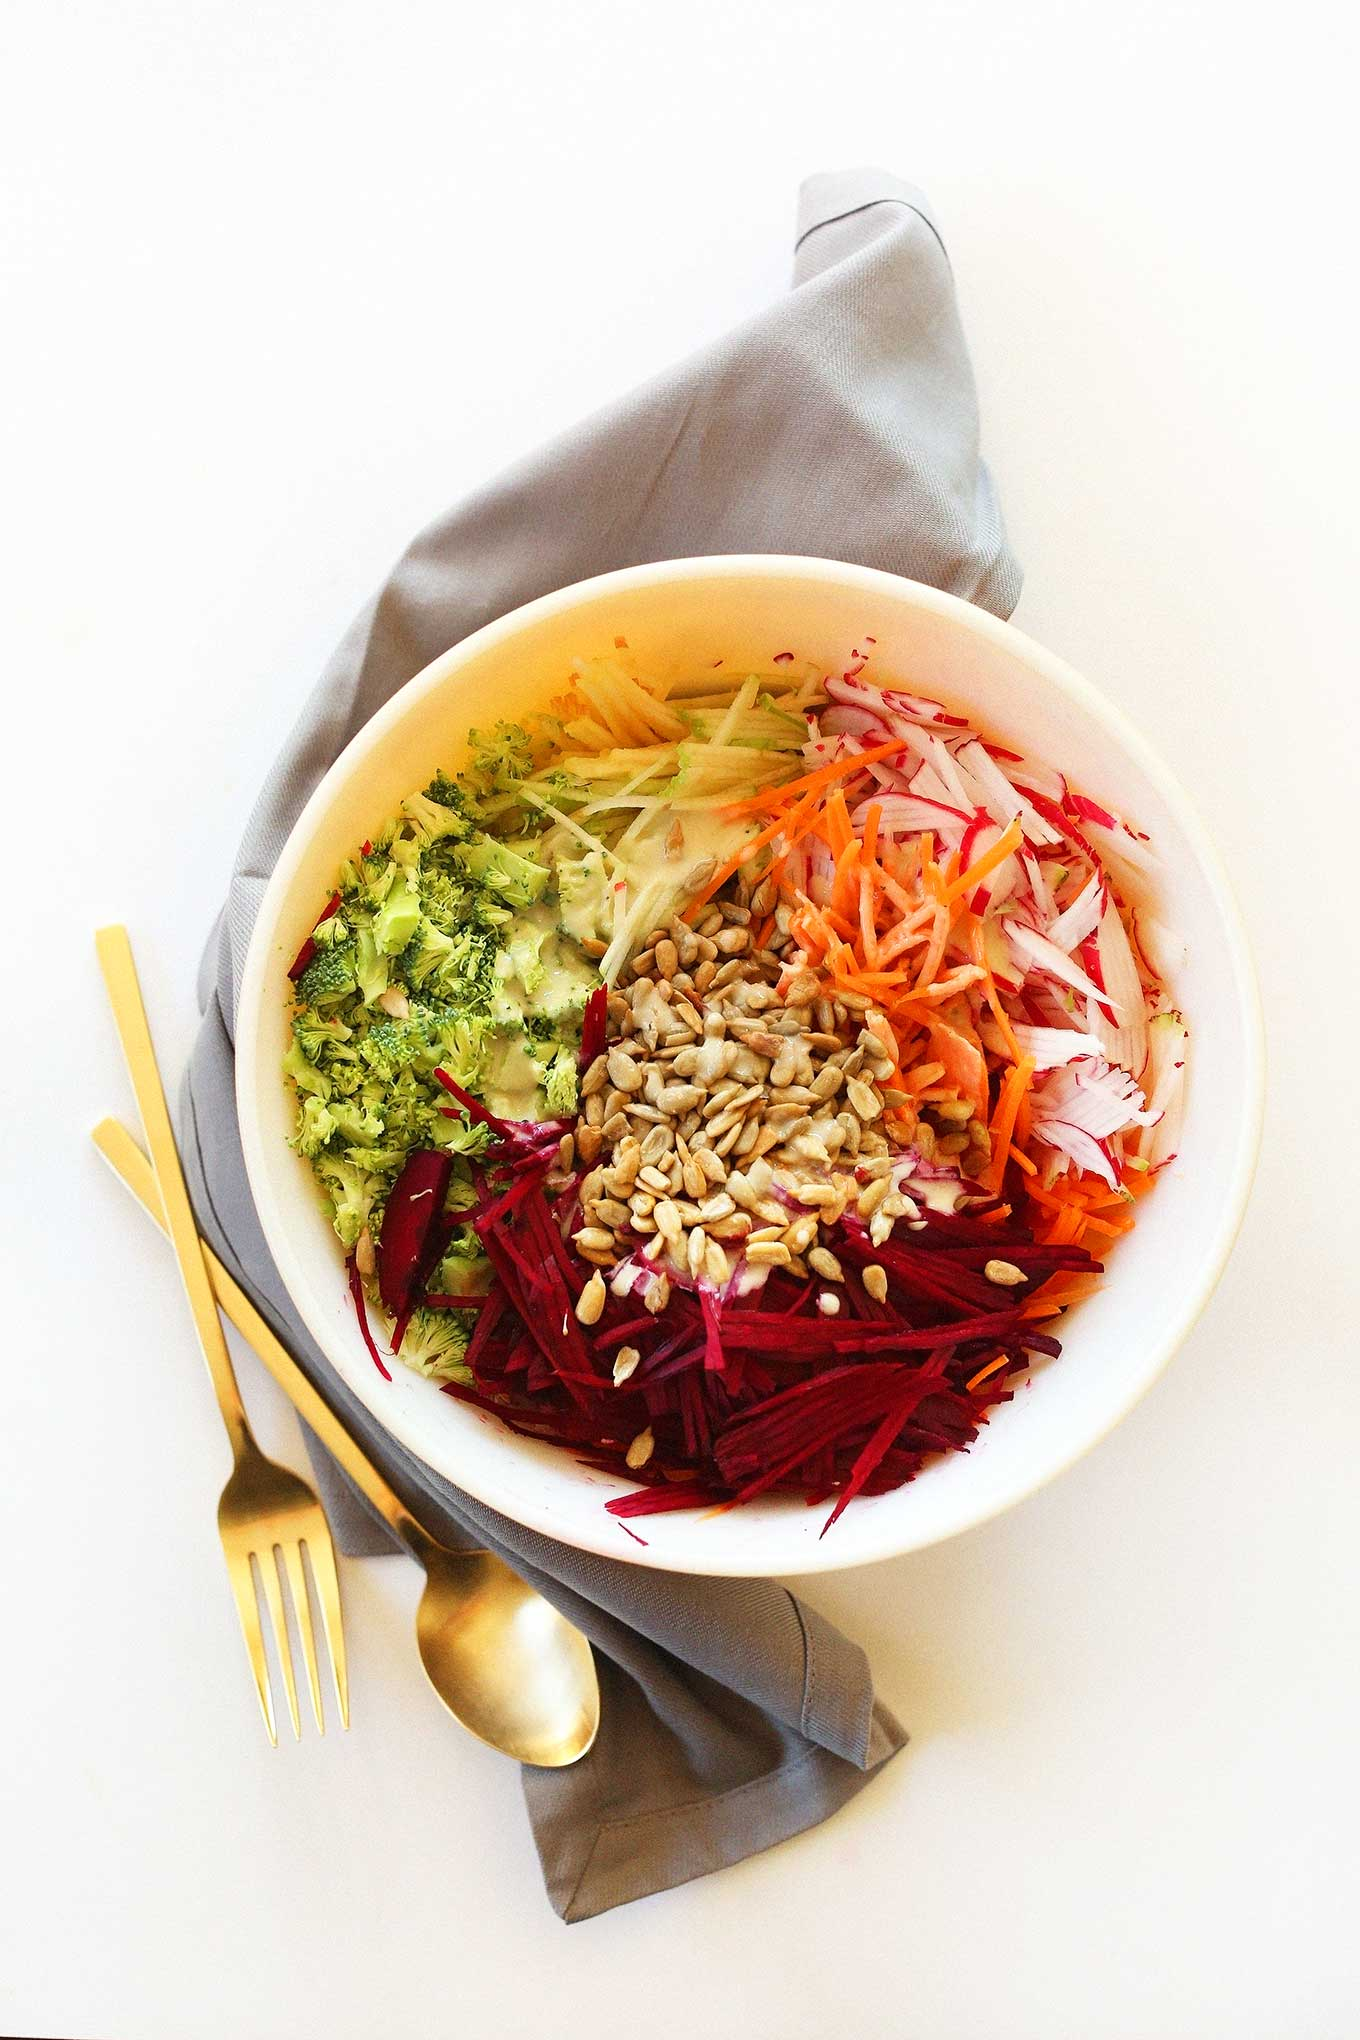 Big bowl of our healthy fall slaw topped with sunflower seeds